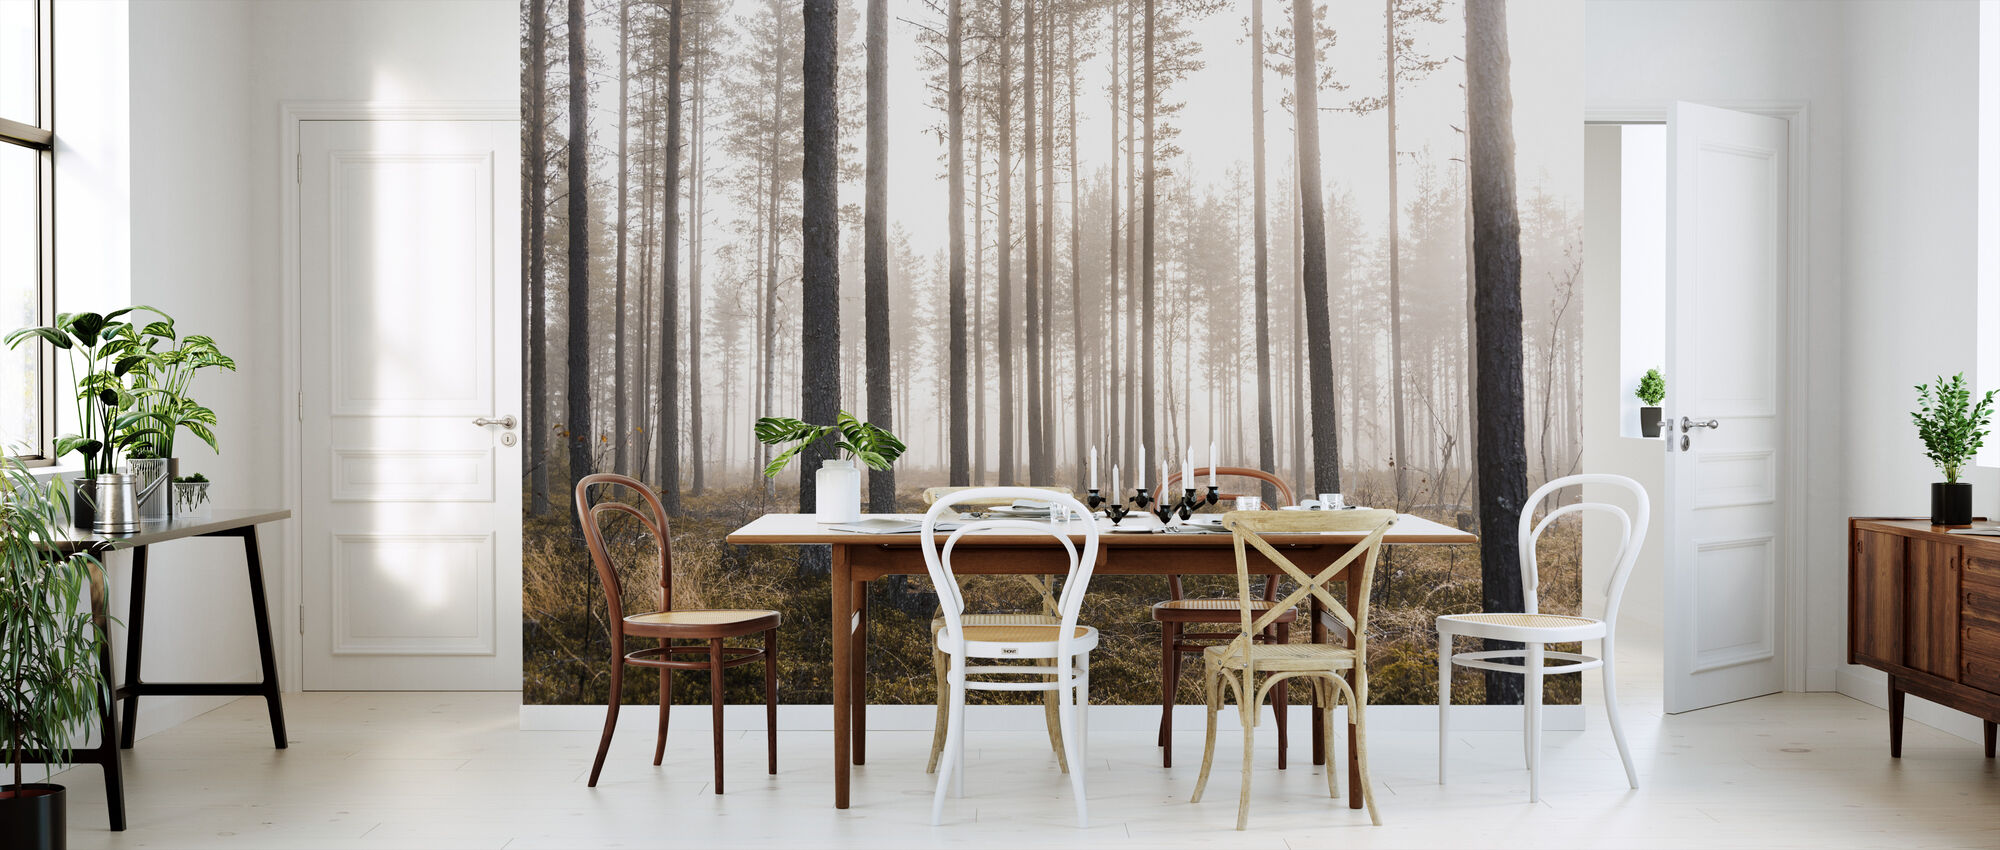 Whispering Trees - Wallpaper - Kitchen